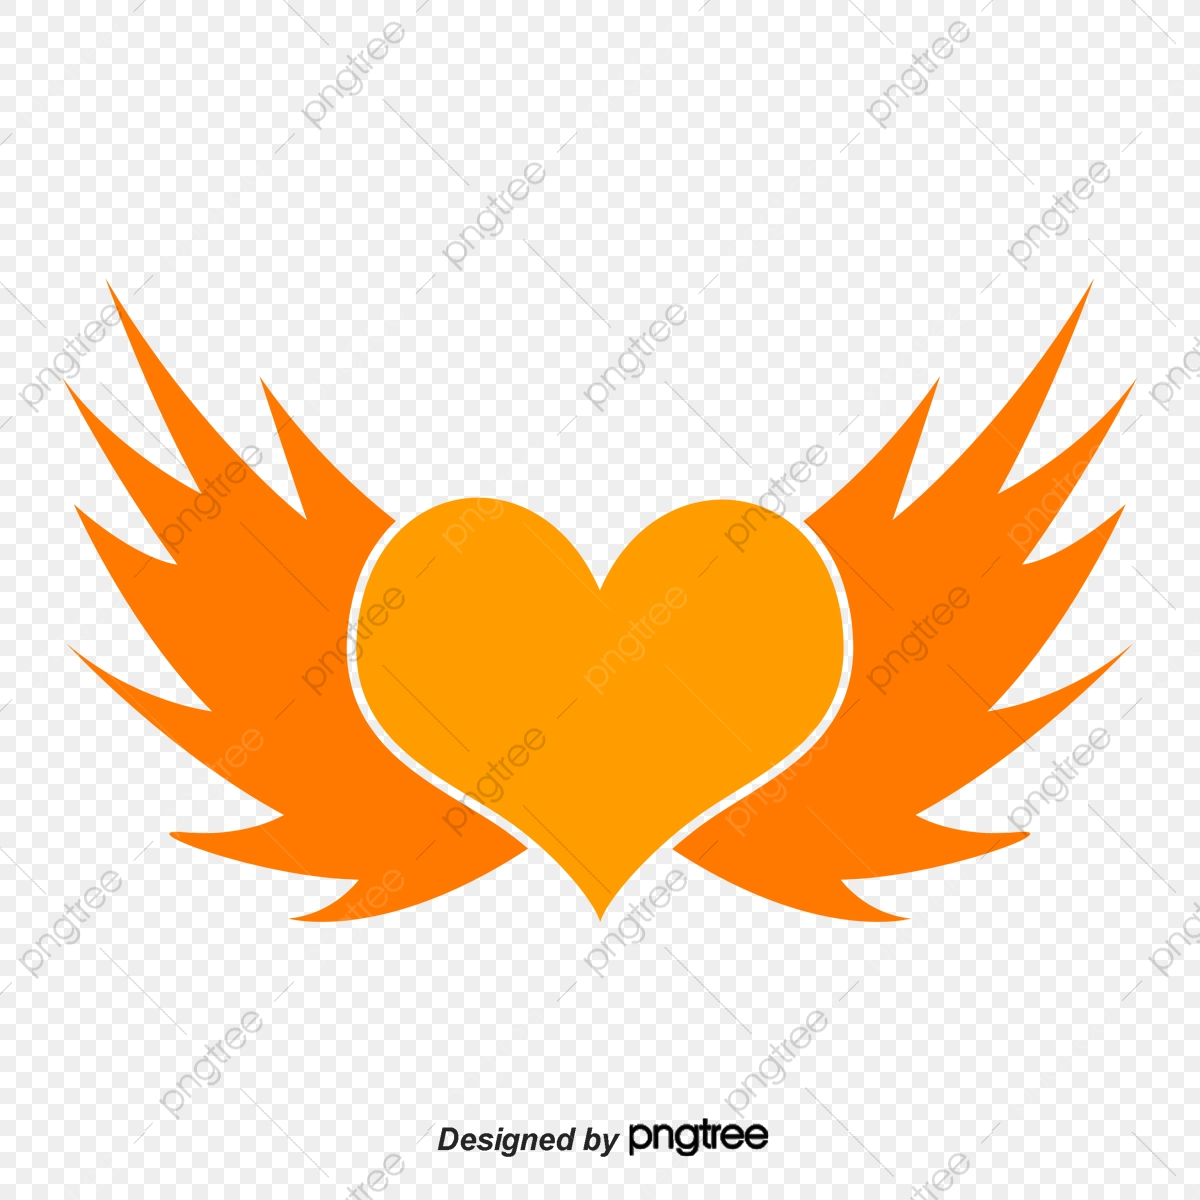 Cartoon Heart Angel Wings Cartoon Heart Angel Png Transparent Clipart Image And Psd File For Free Download